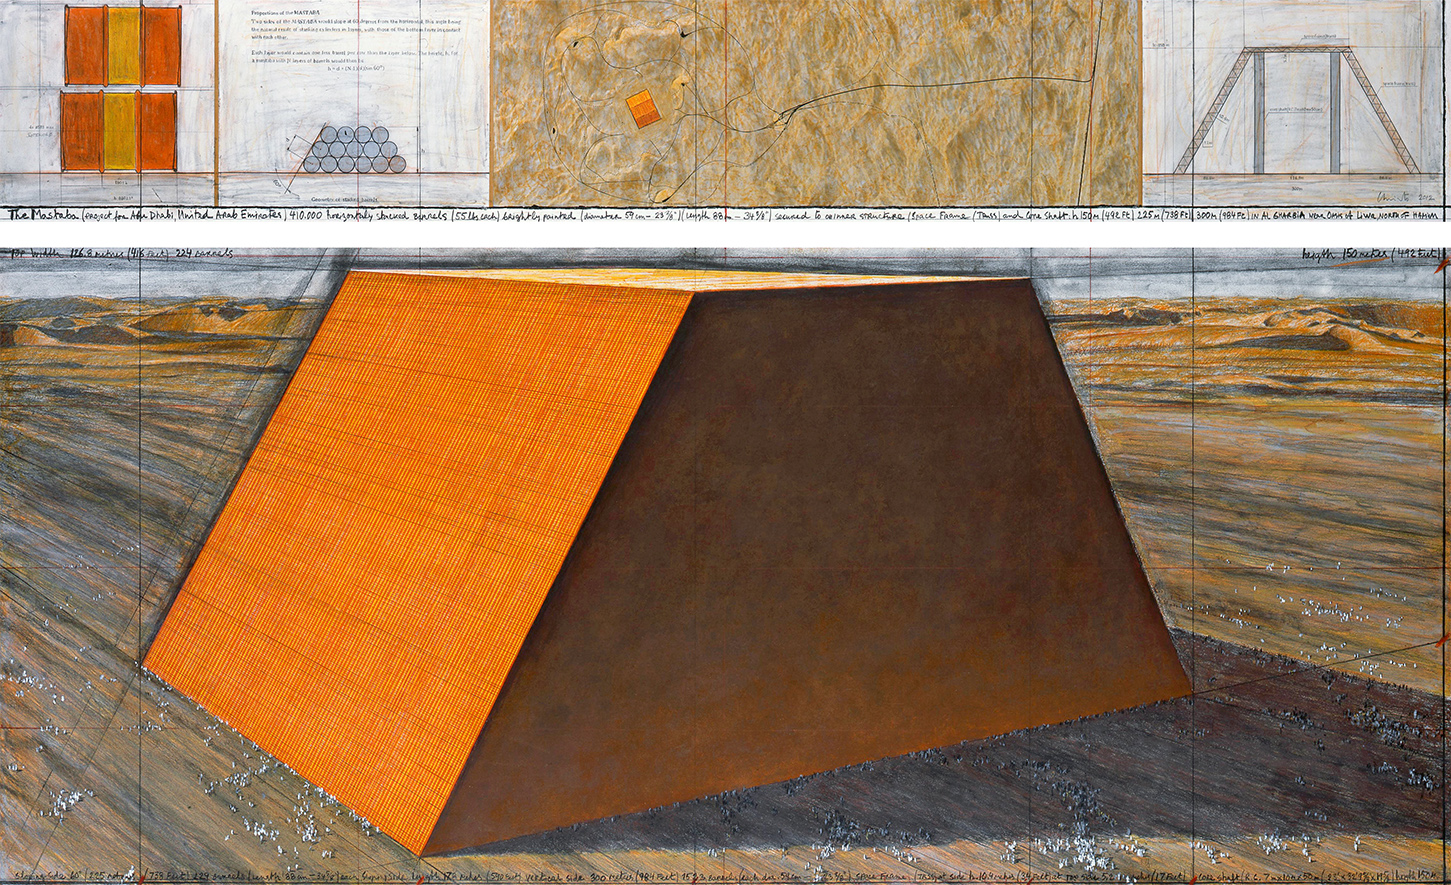 The Mastaba (Project for Abu Dhabi, United Arab Emirates), Drawing 2012 in two parts, Photo: André Grossmann, © 2012 Christo